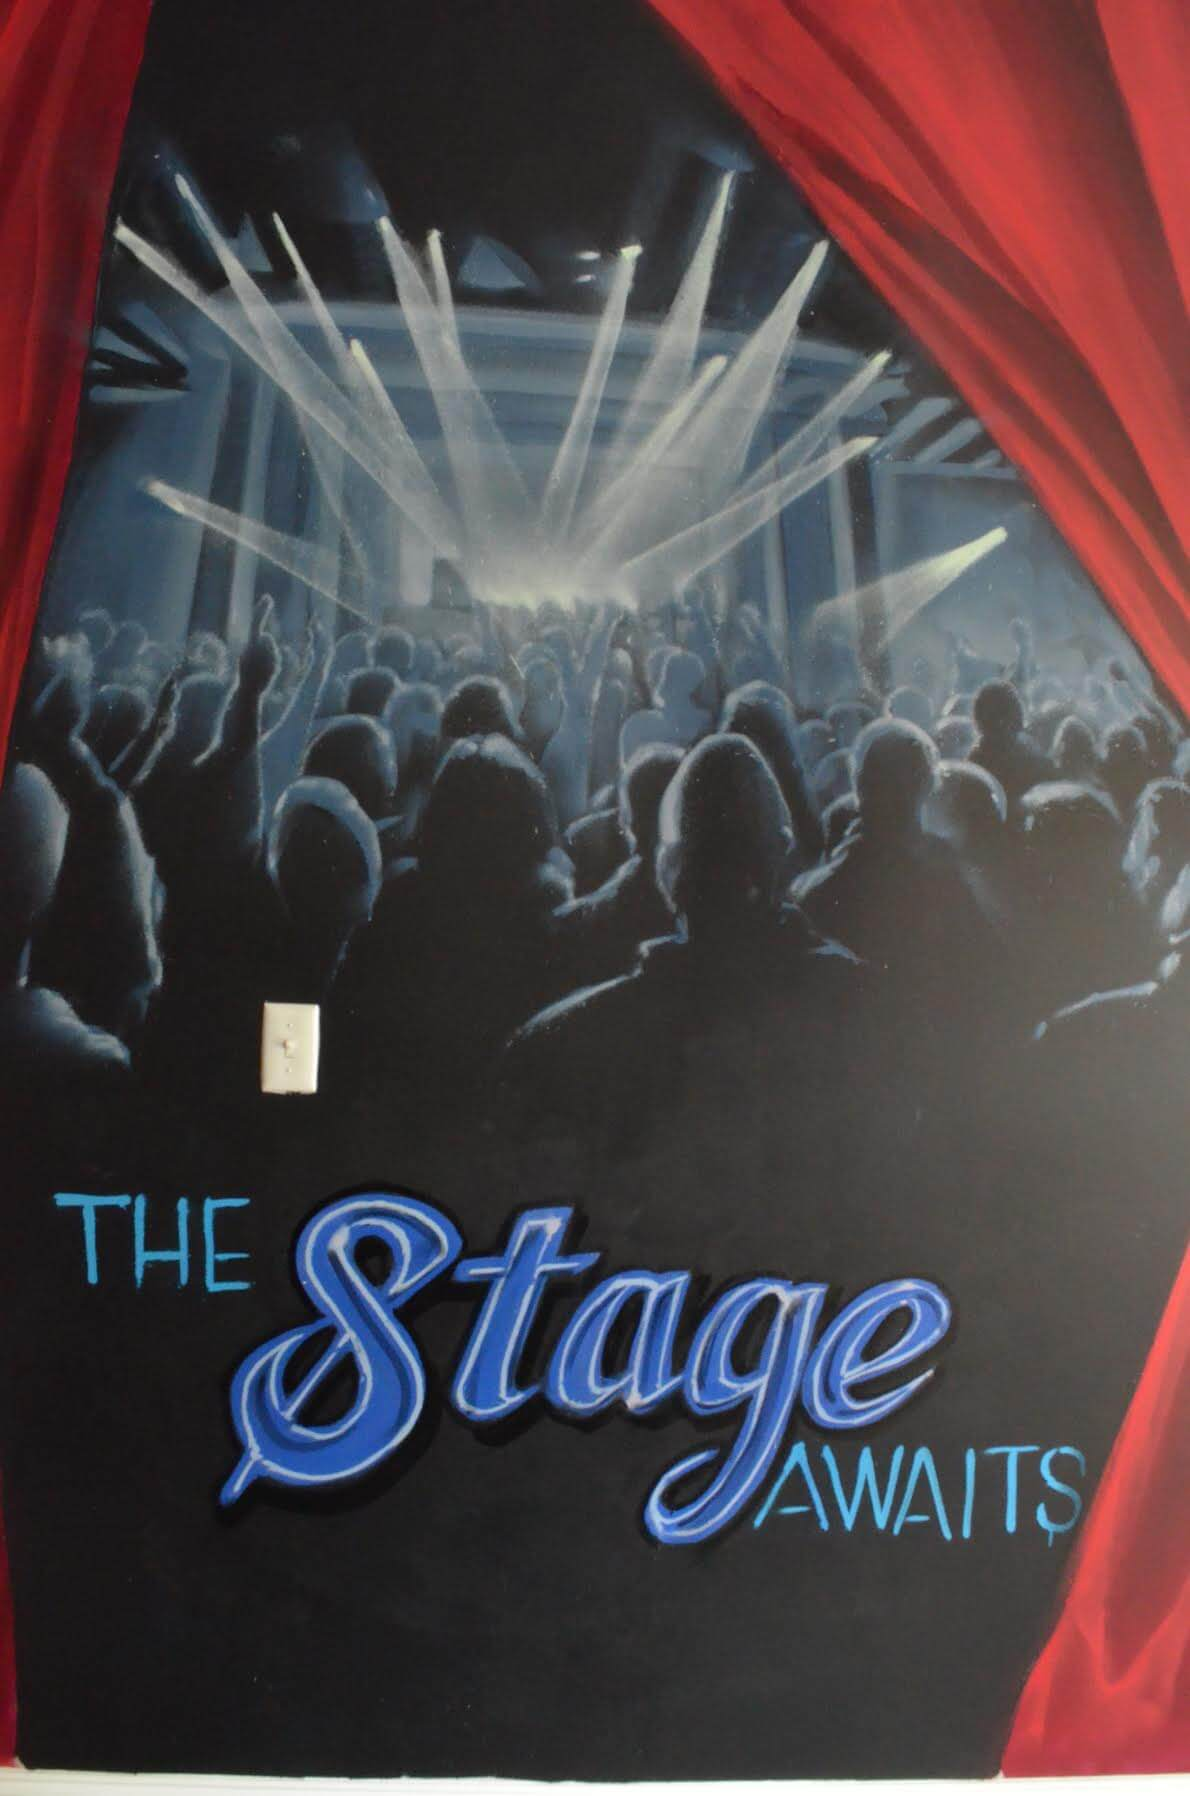 When you enter our school you know the stage awaits.